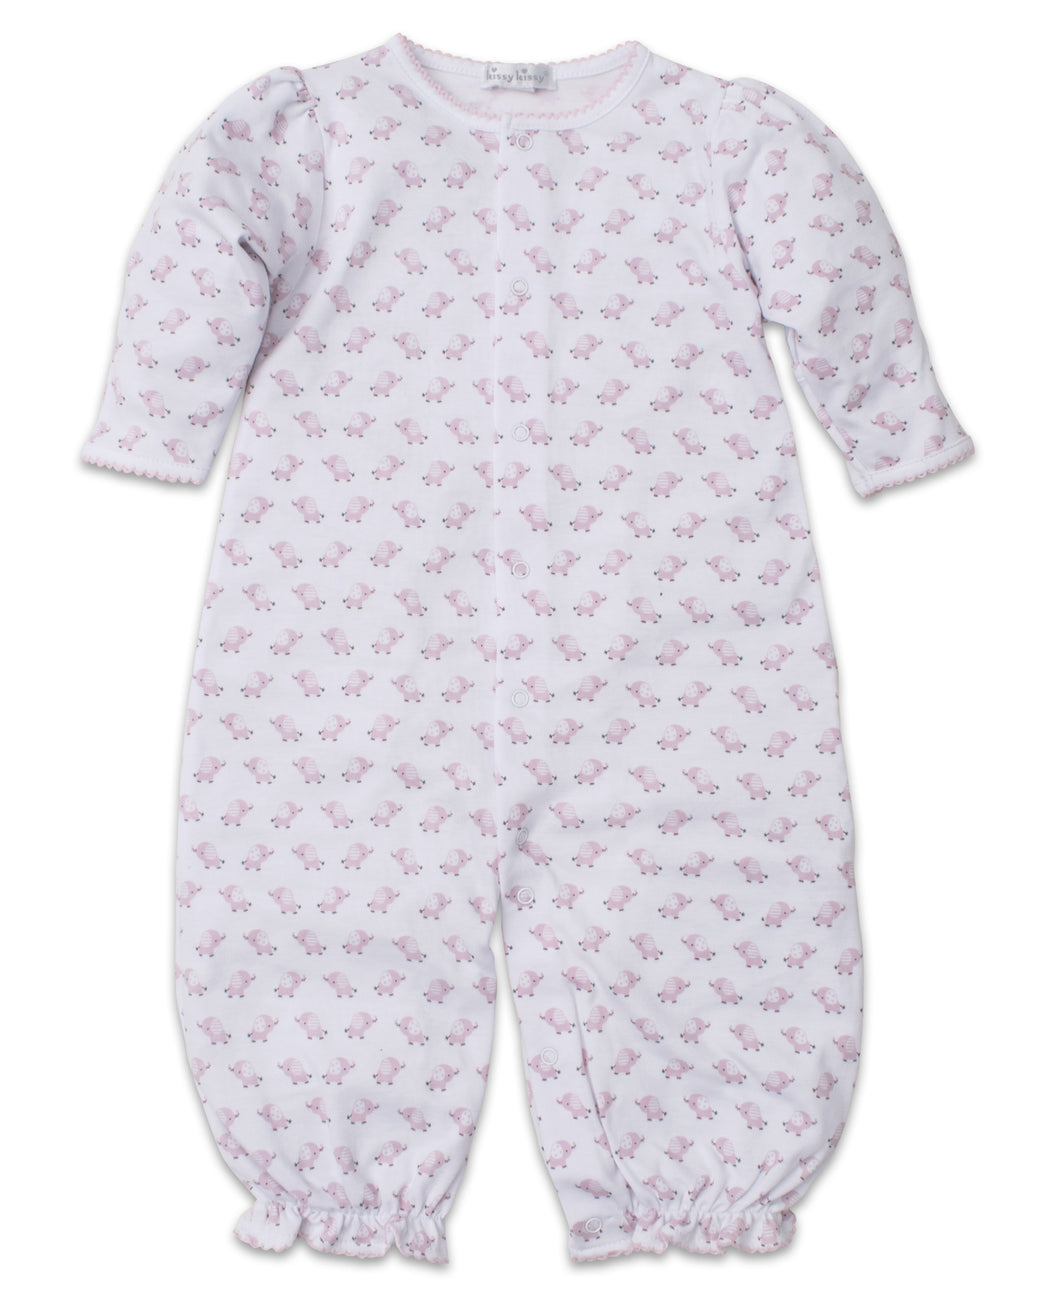 Baby Trunks Converter Gown - Pink